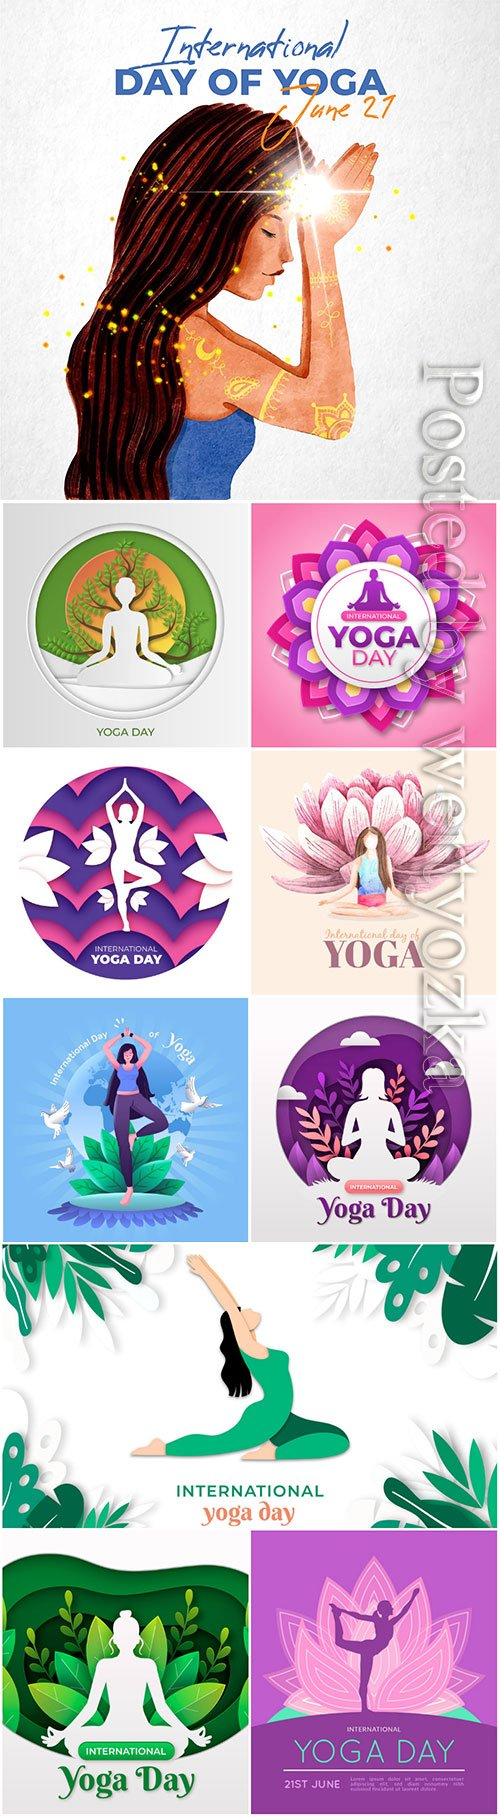 International day of yoga illustrated vector set